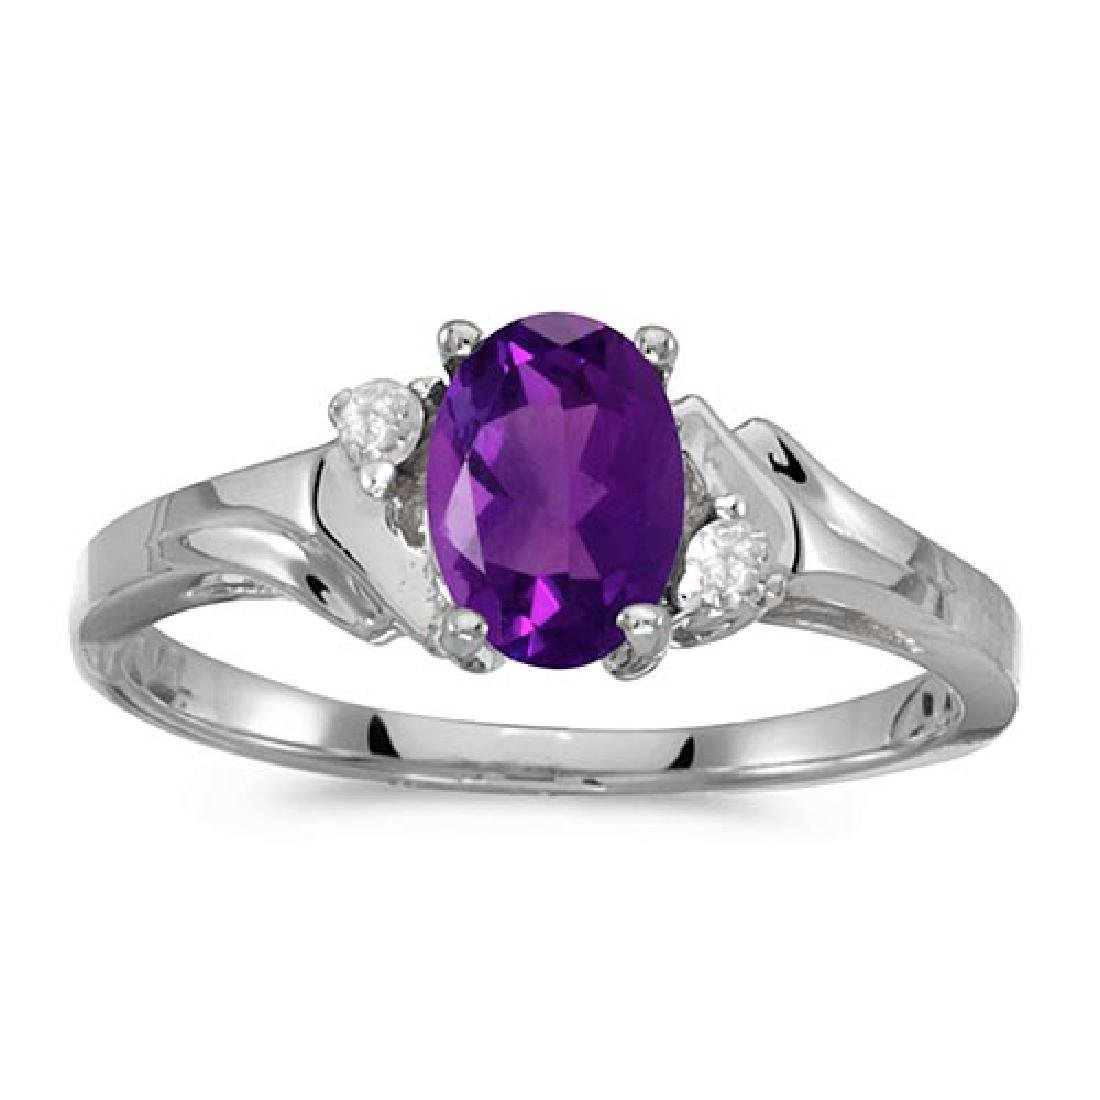 Certified 14k White Gold Oval Amethyst And Diamond Ring